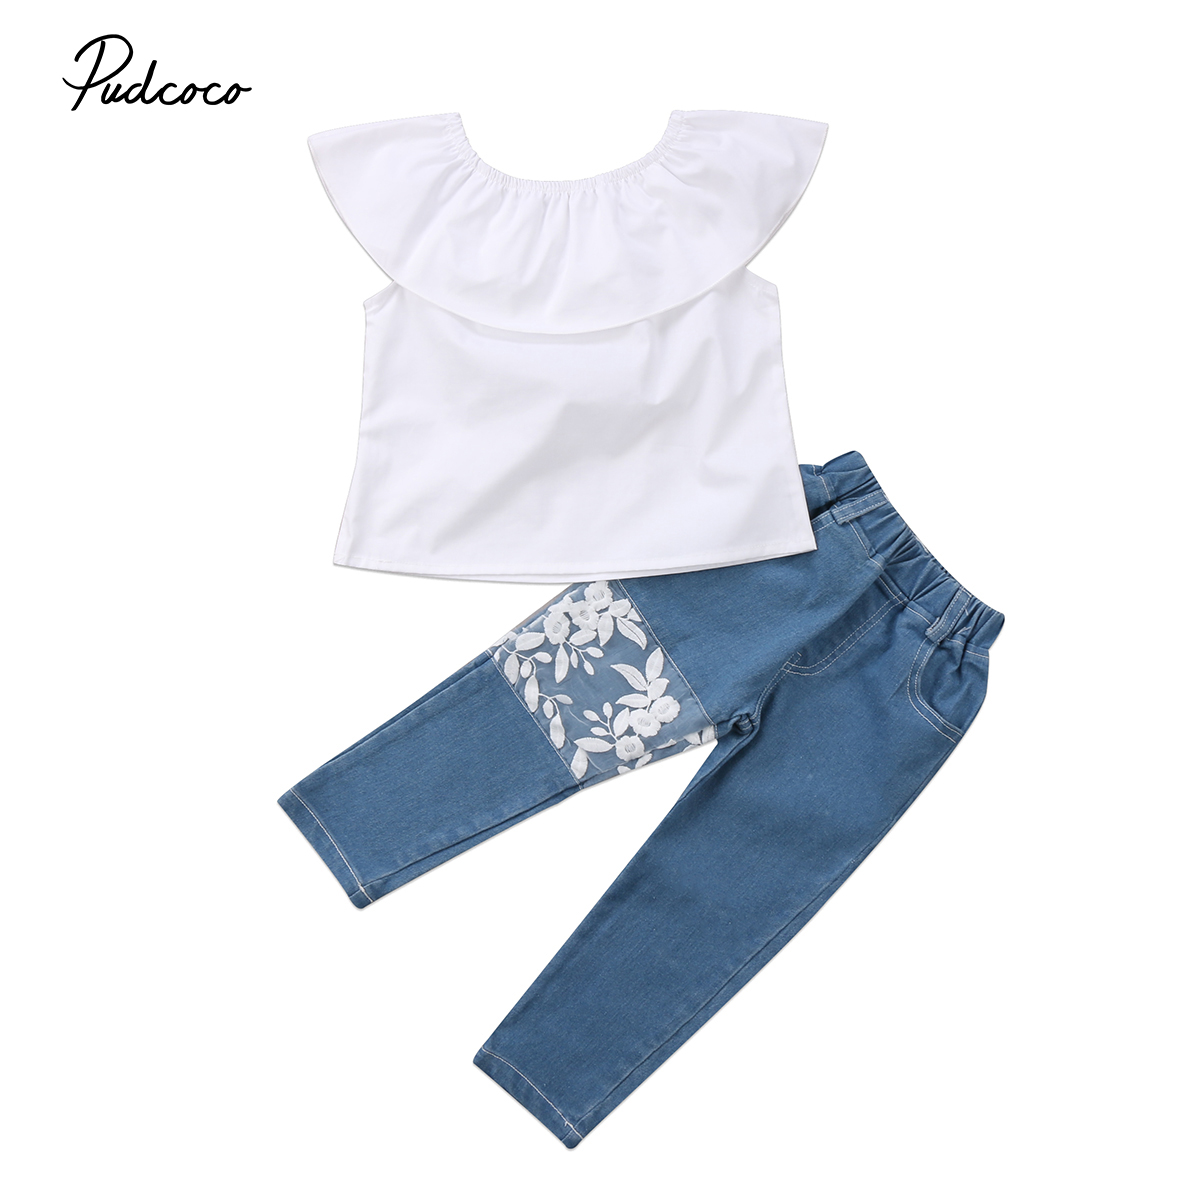 2018 Brand New Newborn Toddler Infant Child Baby Kids Girls Lace Outfits Off Shoulder Top Jeans Denim Pants Fashion Clothes 0-5T viishow men brand jeans streetwear men hole jeans new fashion casual male denim pants trousers classic straight jeans masculina